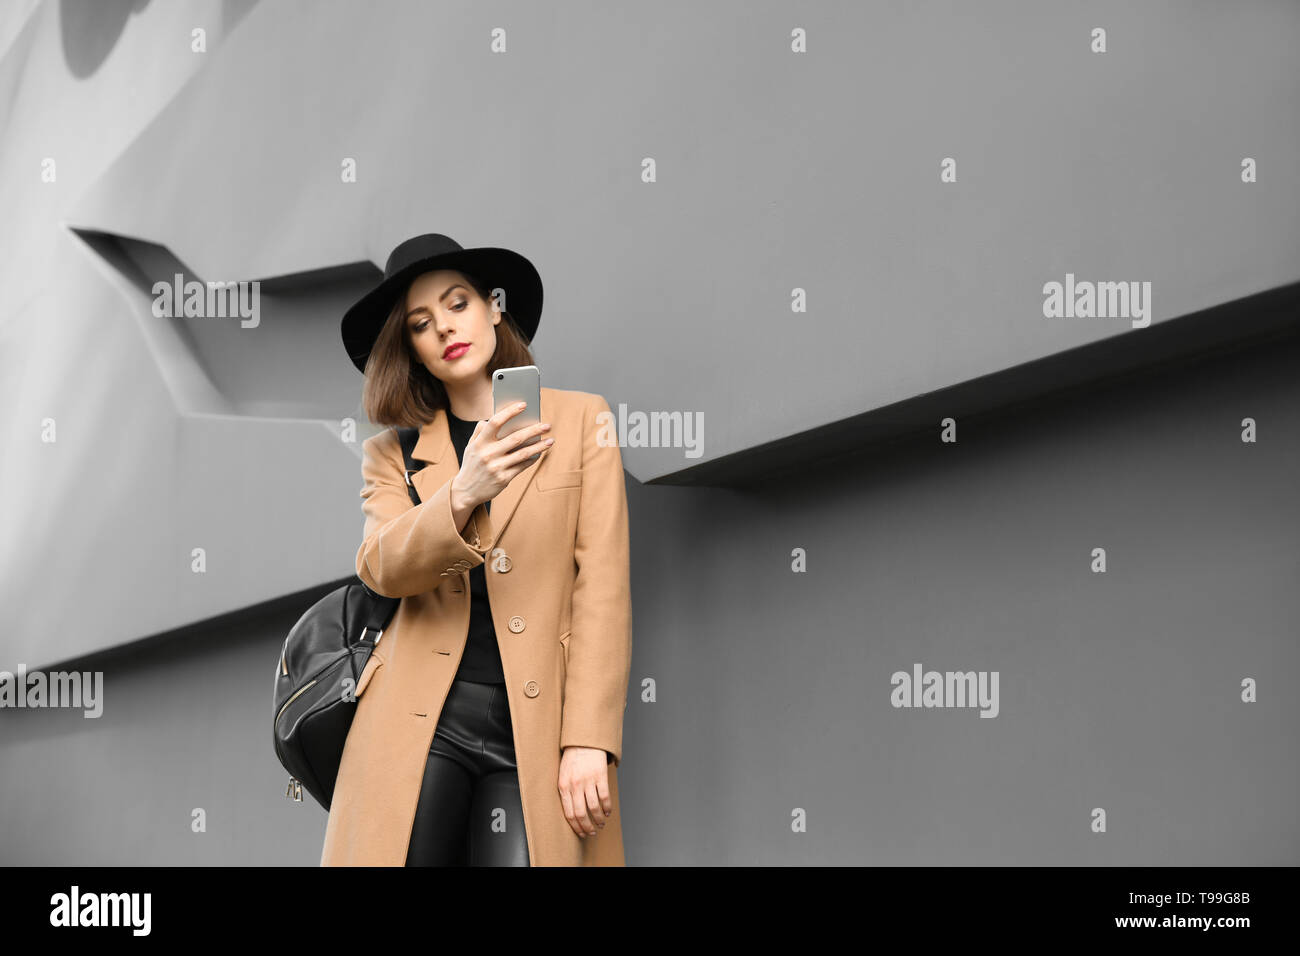 Beautiful fashionable woman with mobile phone near grey wall outdoors - Stock Image